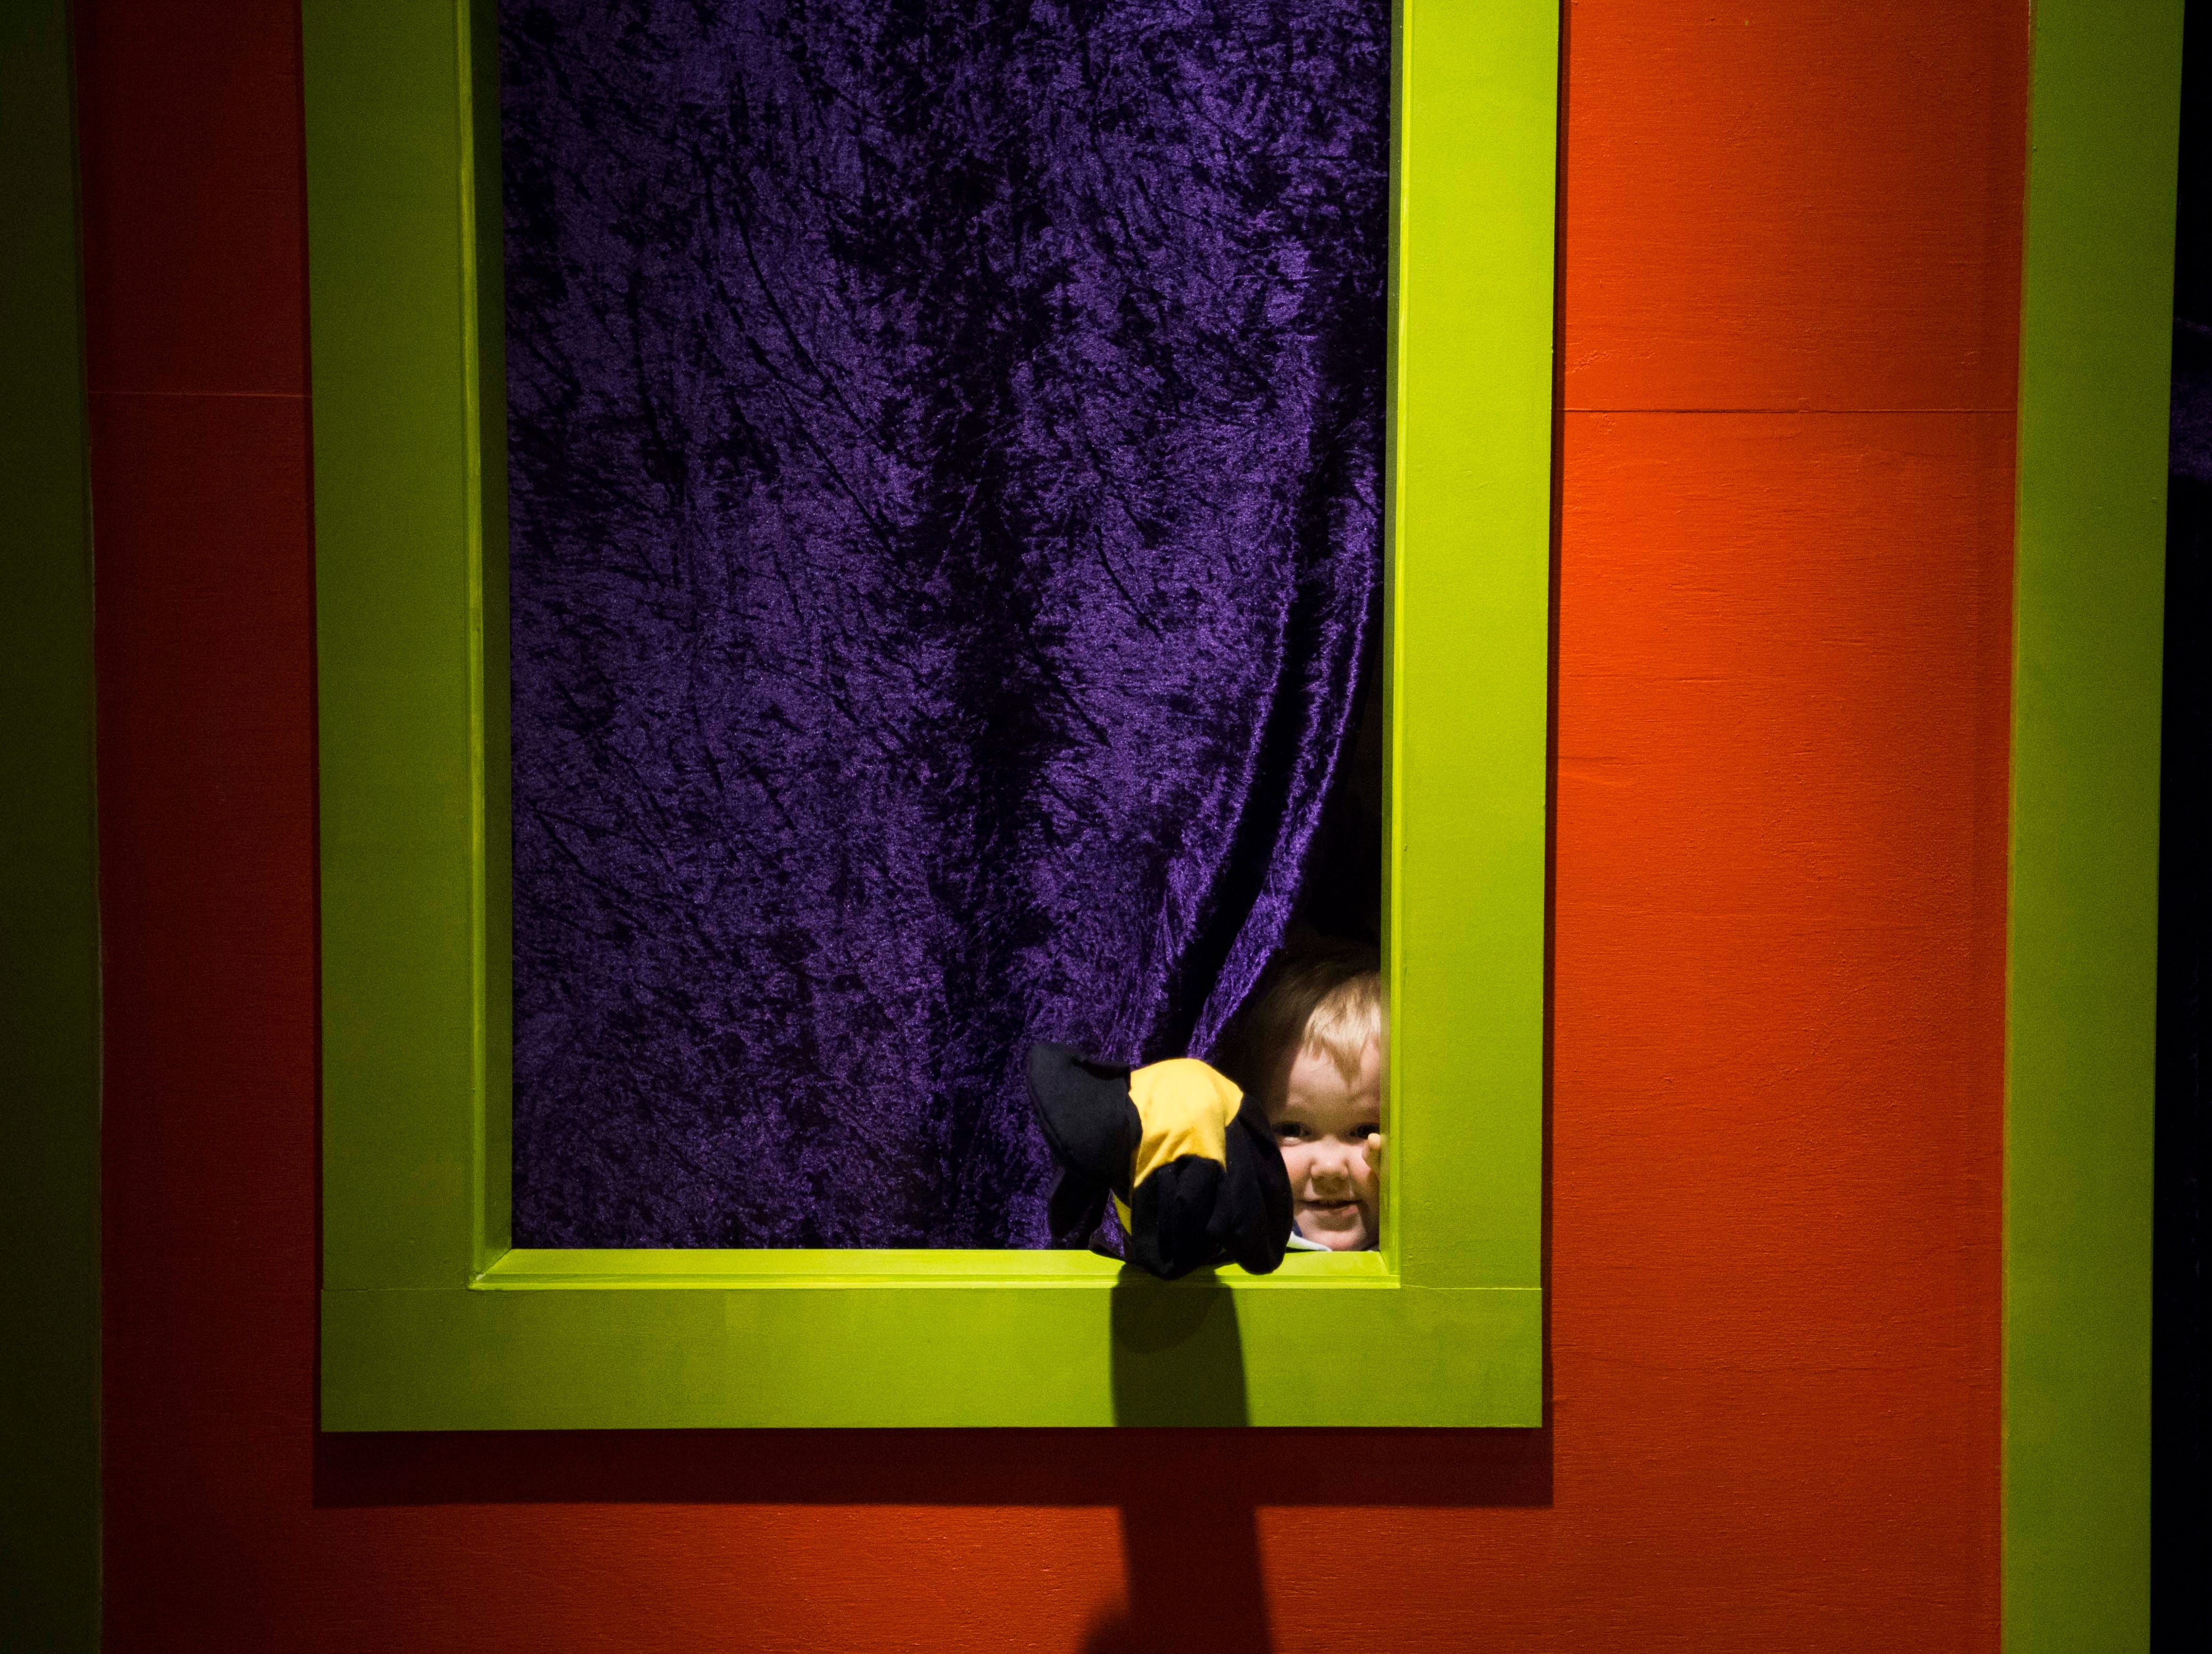 Wheeler Gooch, 3, of Knoxville plays with a puppet at the new Muse at the Mall at West Town Mall in Knoxville Thursday, April 11, 2019. The Muse offers STEAM (science, technology, engineering, art, math) based play for Knoxville families, and will open to the public on Saturday April 13.